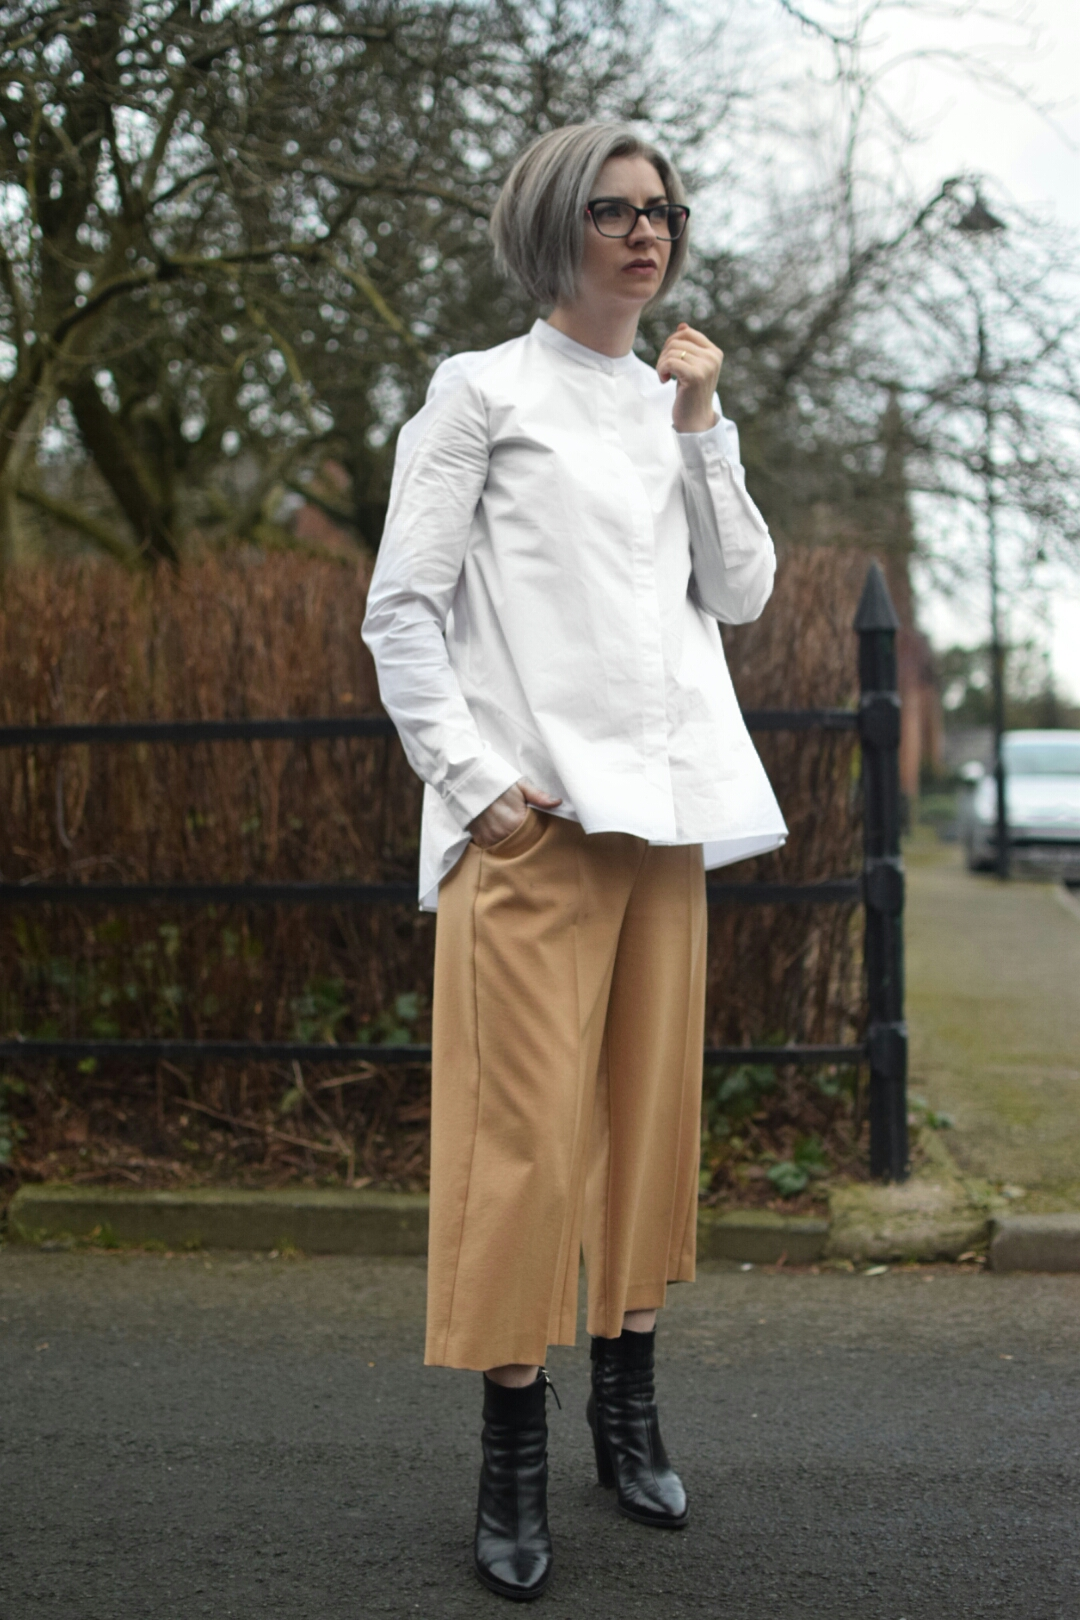 COS White Shirt, River Island Camel Culottes, and Zara Ankle Boots.